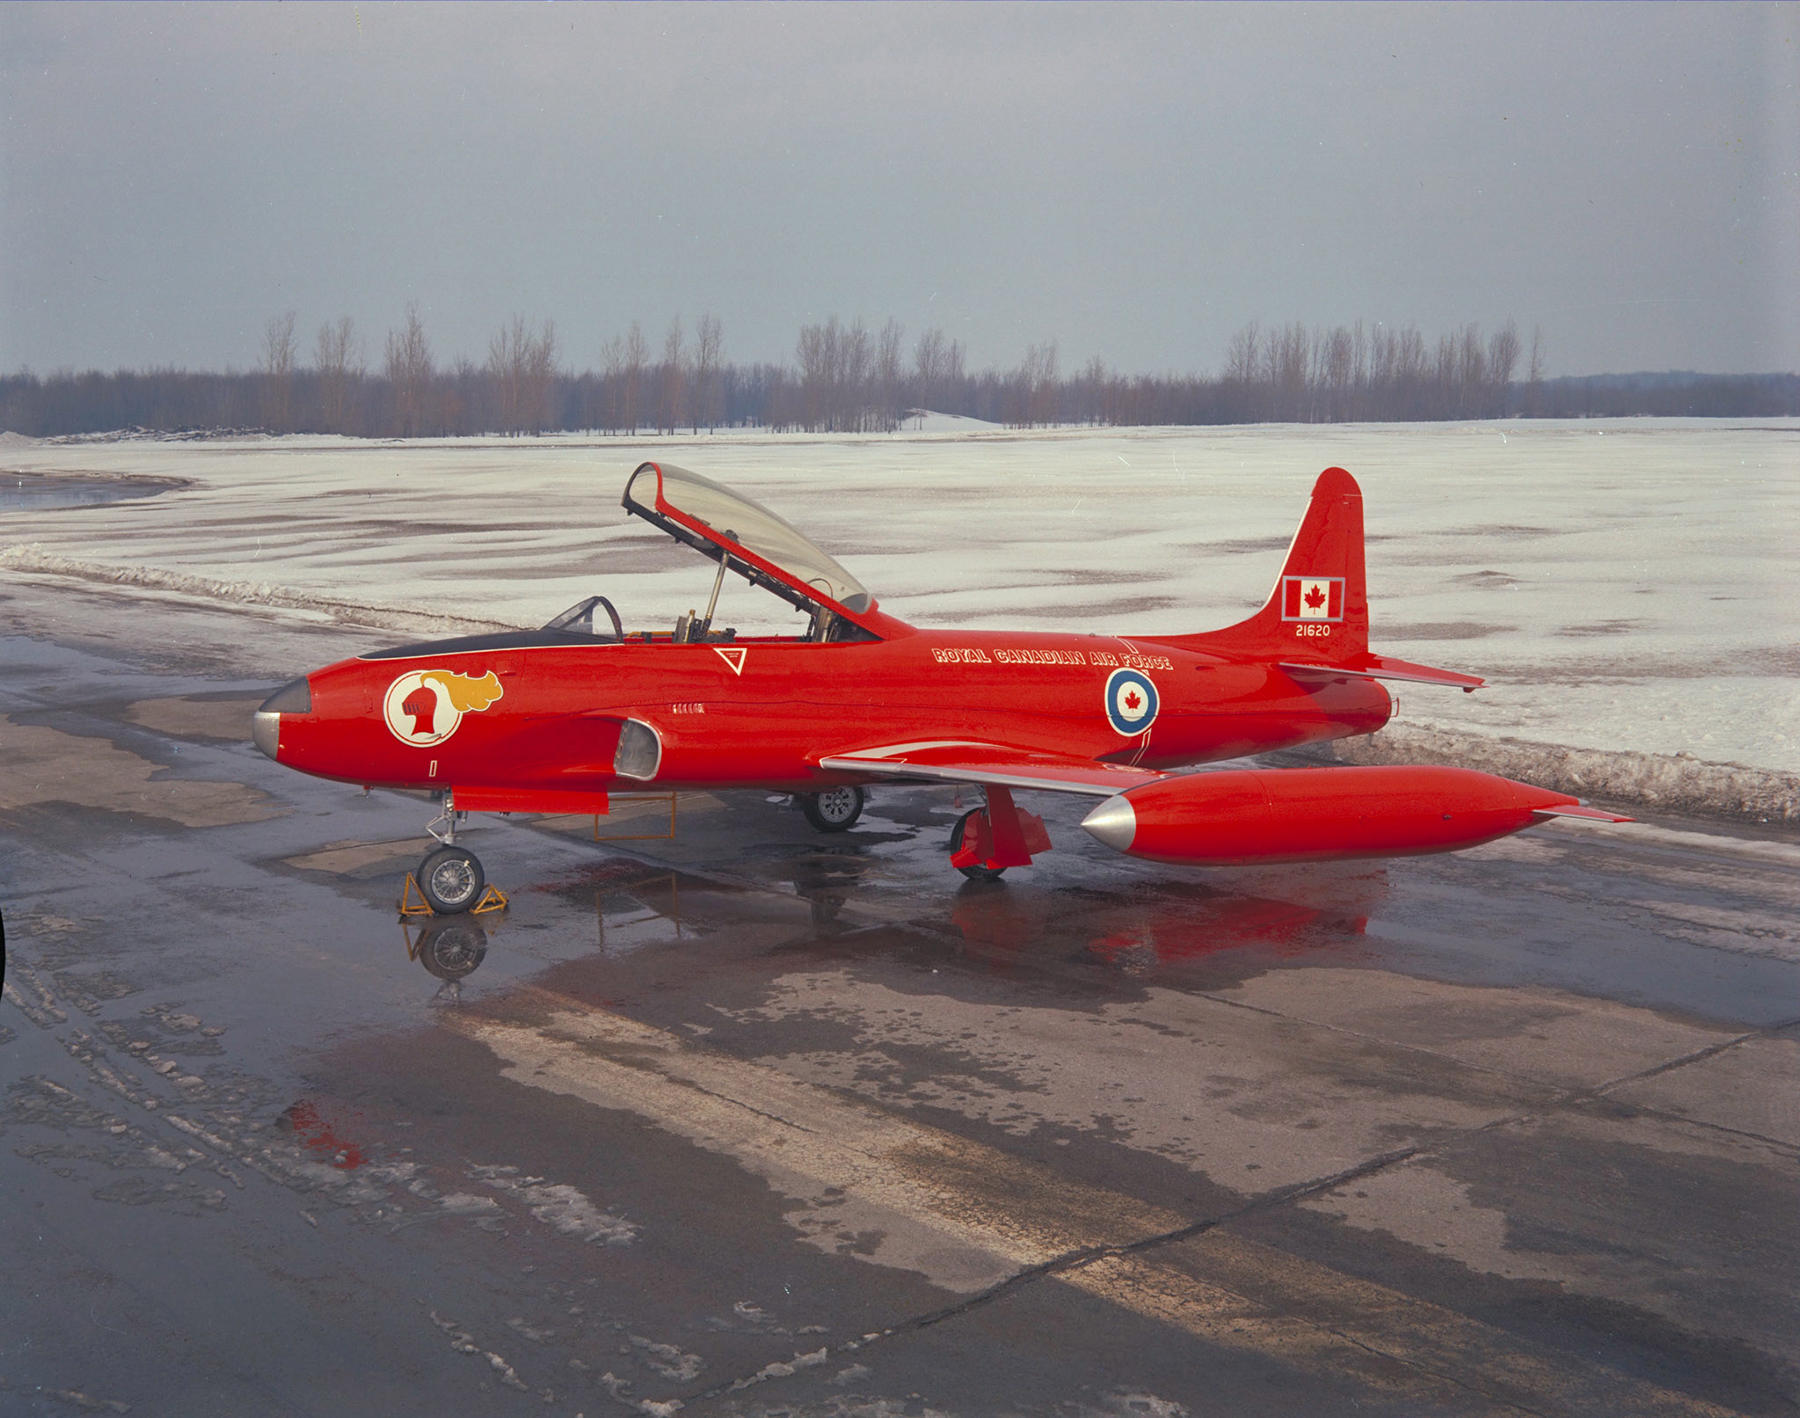 The Red Knight aircraft, a CT-133 Silver Star, sports a new type of red paint for the Golden Centennaires' 1967 Centennial show season. The Red Knight team will receive the Belt of Orion, the Canada's Aviation Hall of Fame' award of excellence, in 2020. PHOTO: DND Archives, PCN67-283